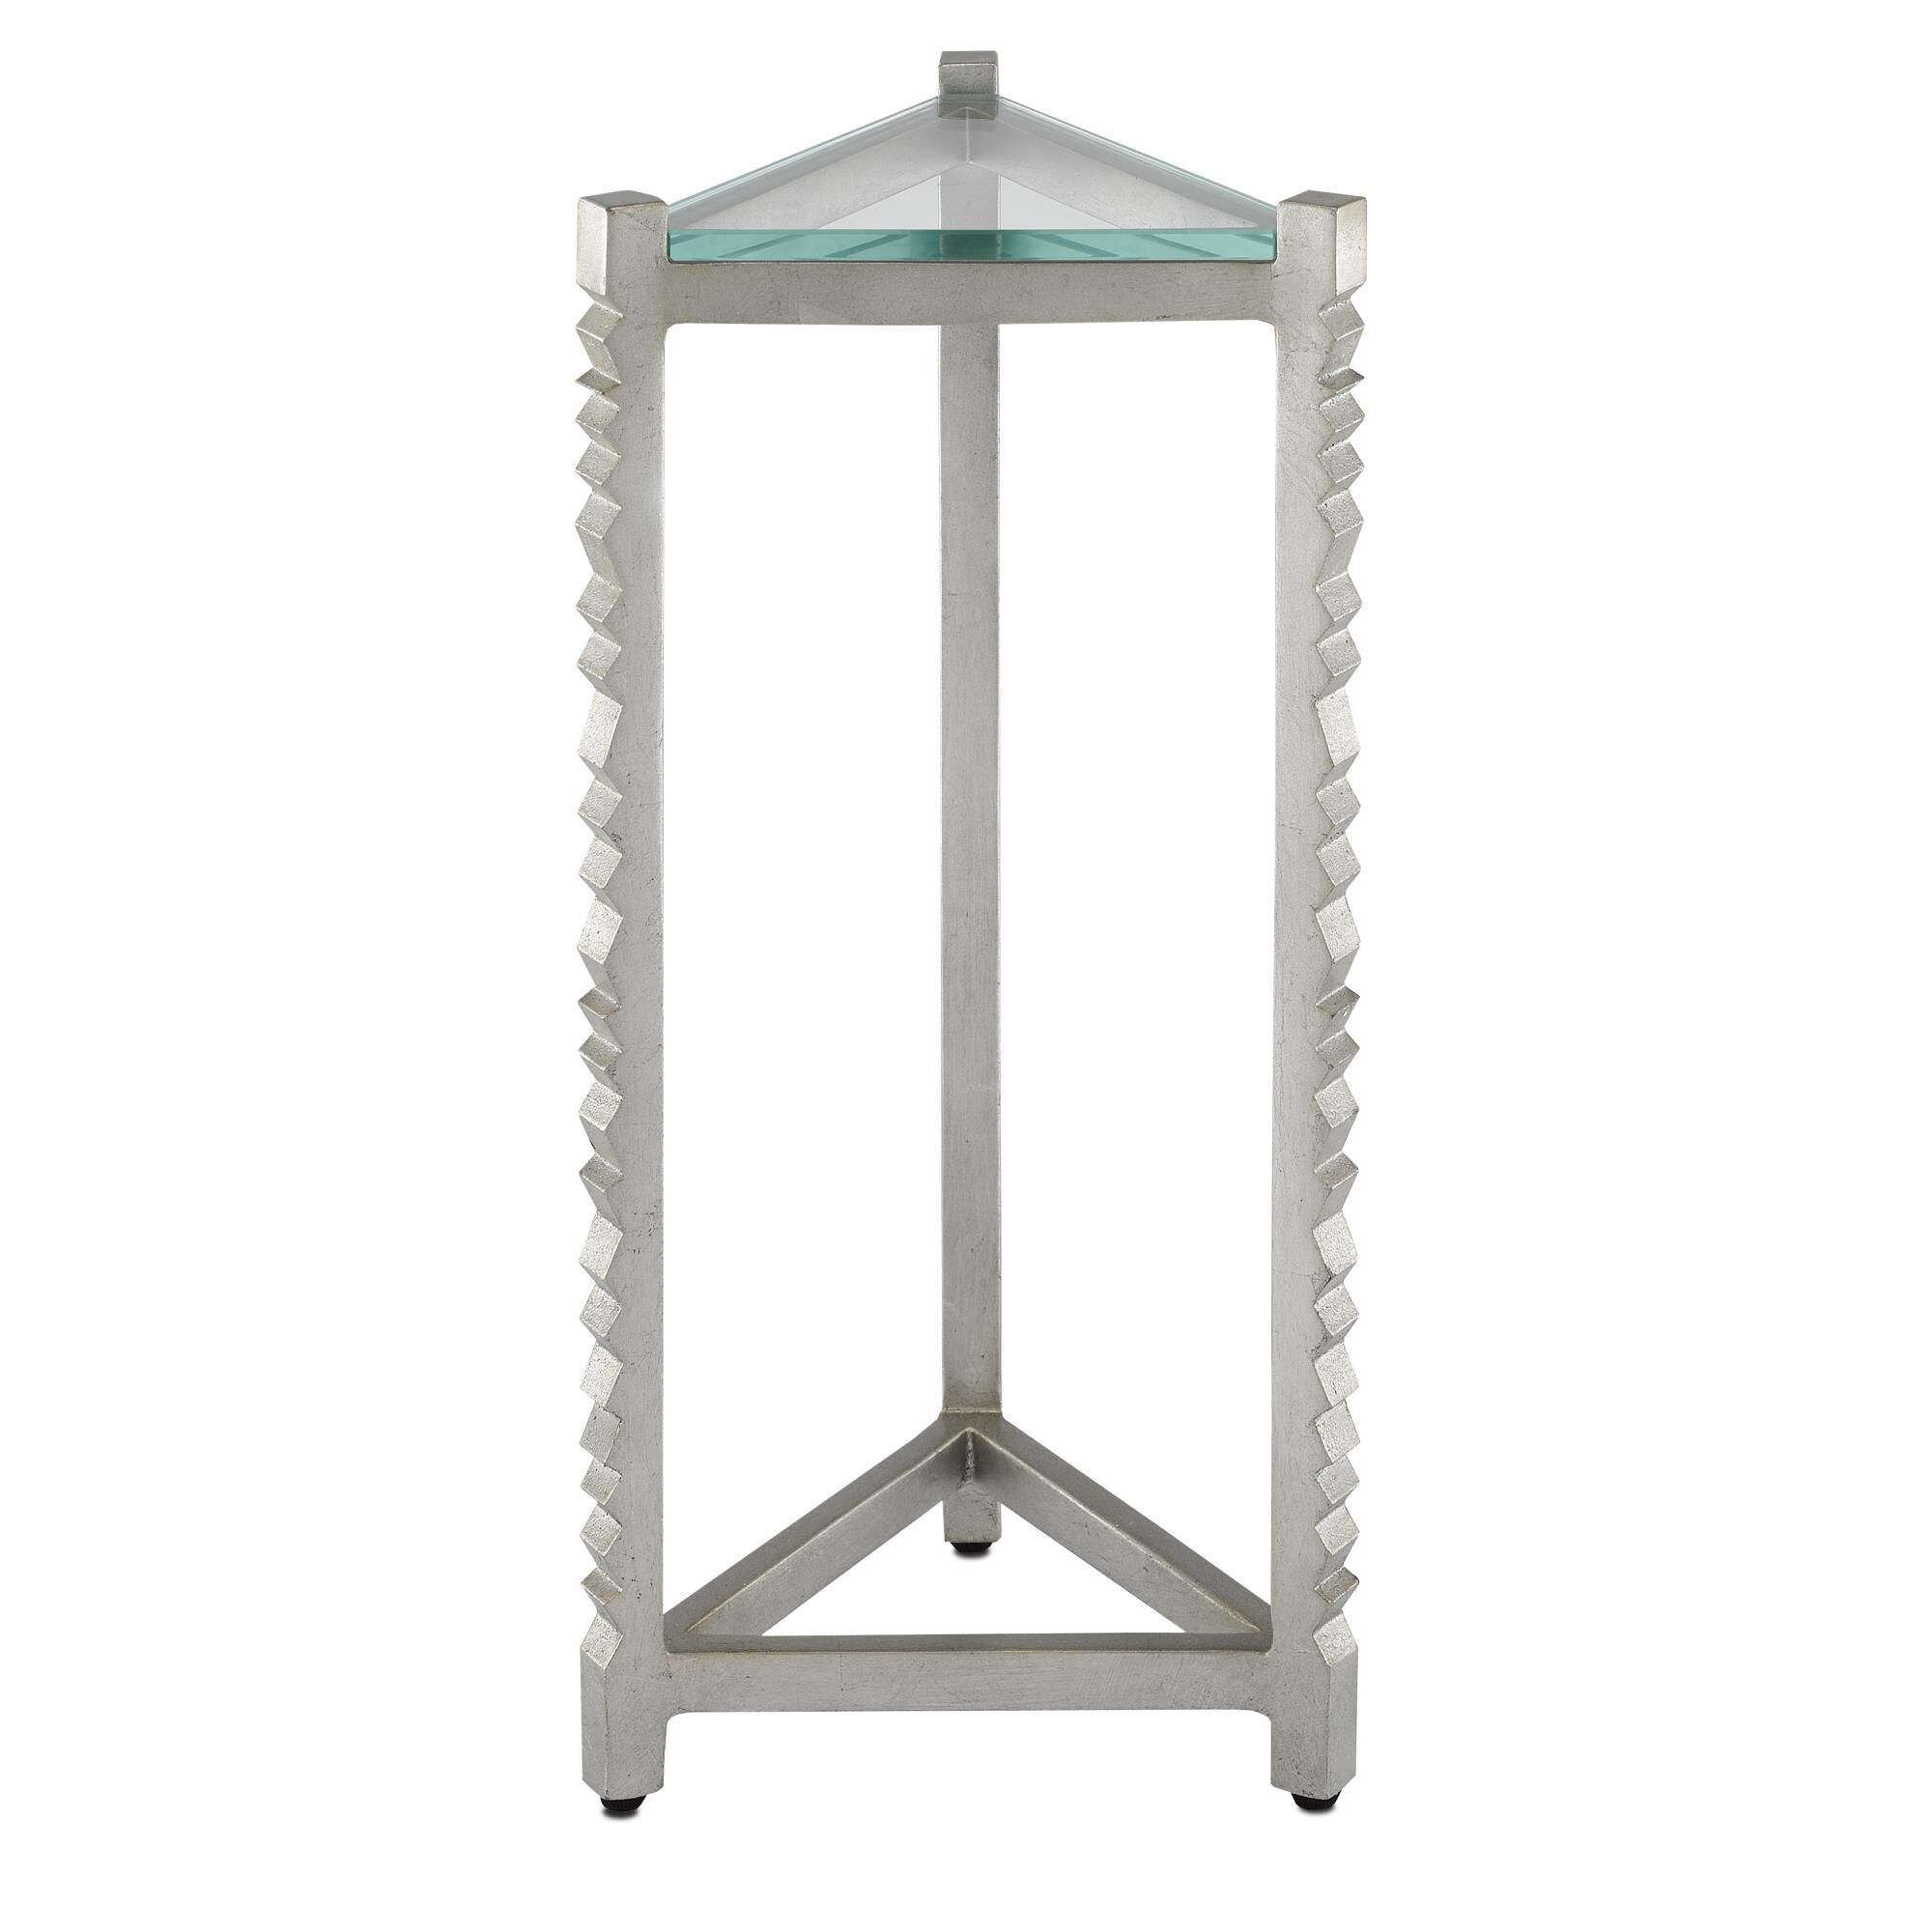 Currey and Company Levi Accent Table Levi - 4000-0092 - Industrial